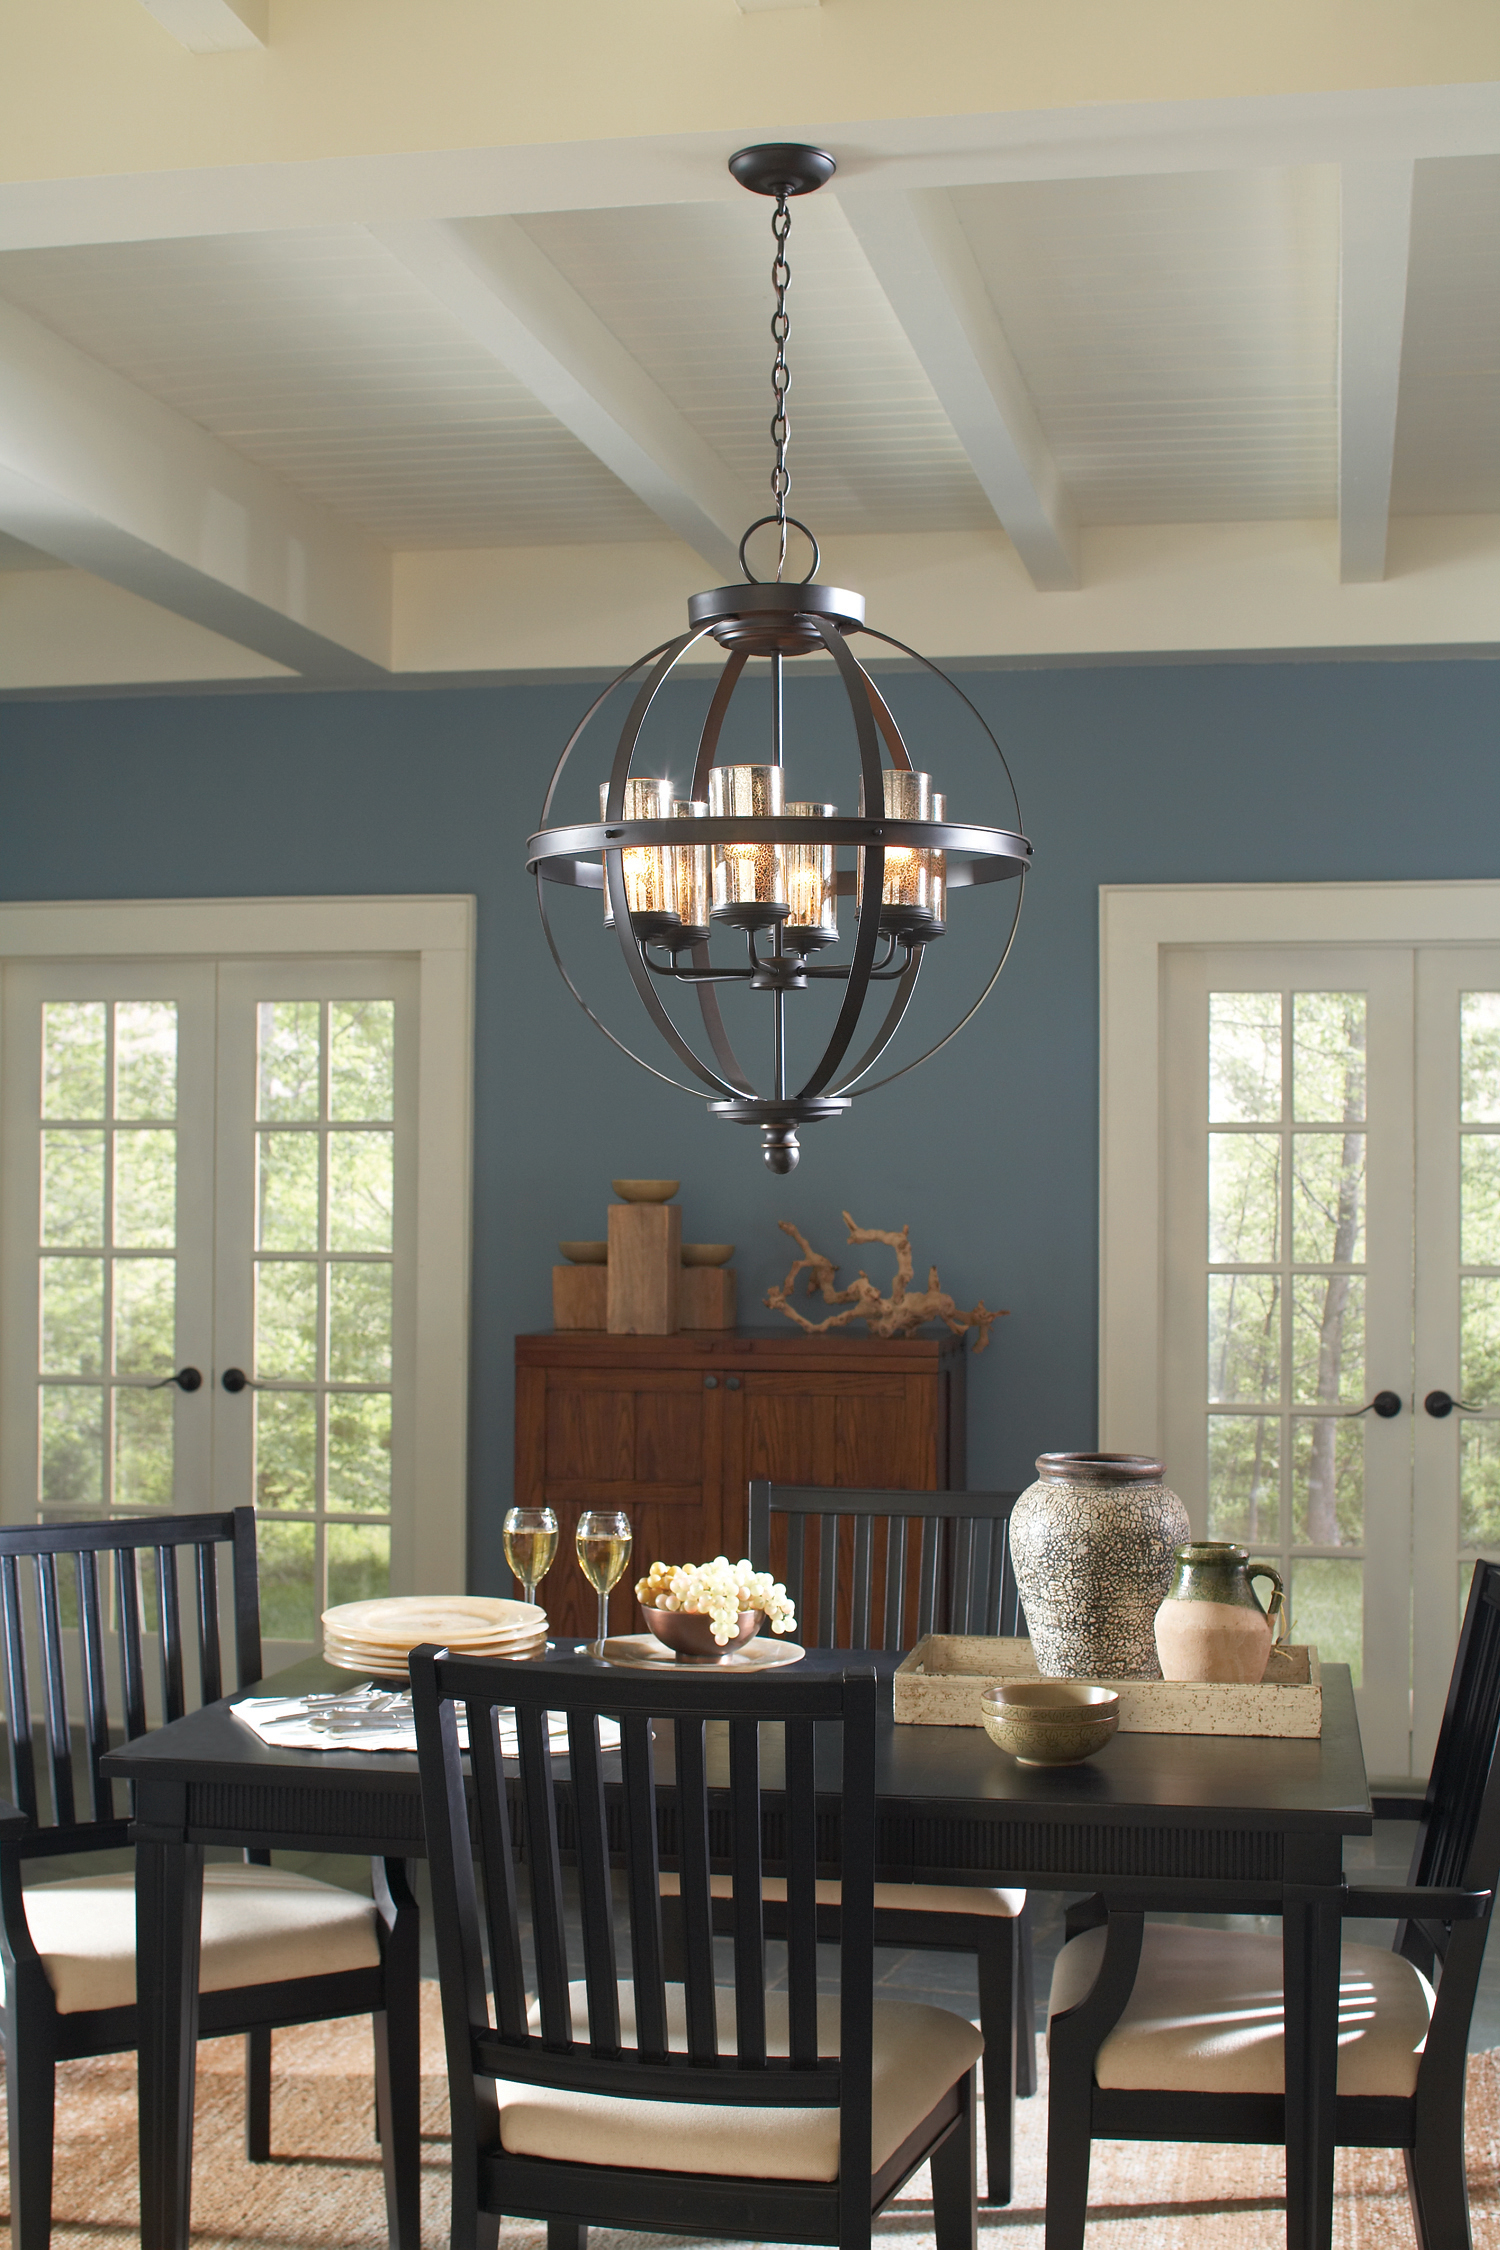 Image Gallery : seagul lighting - azcodes.com